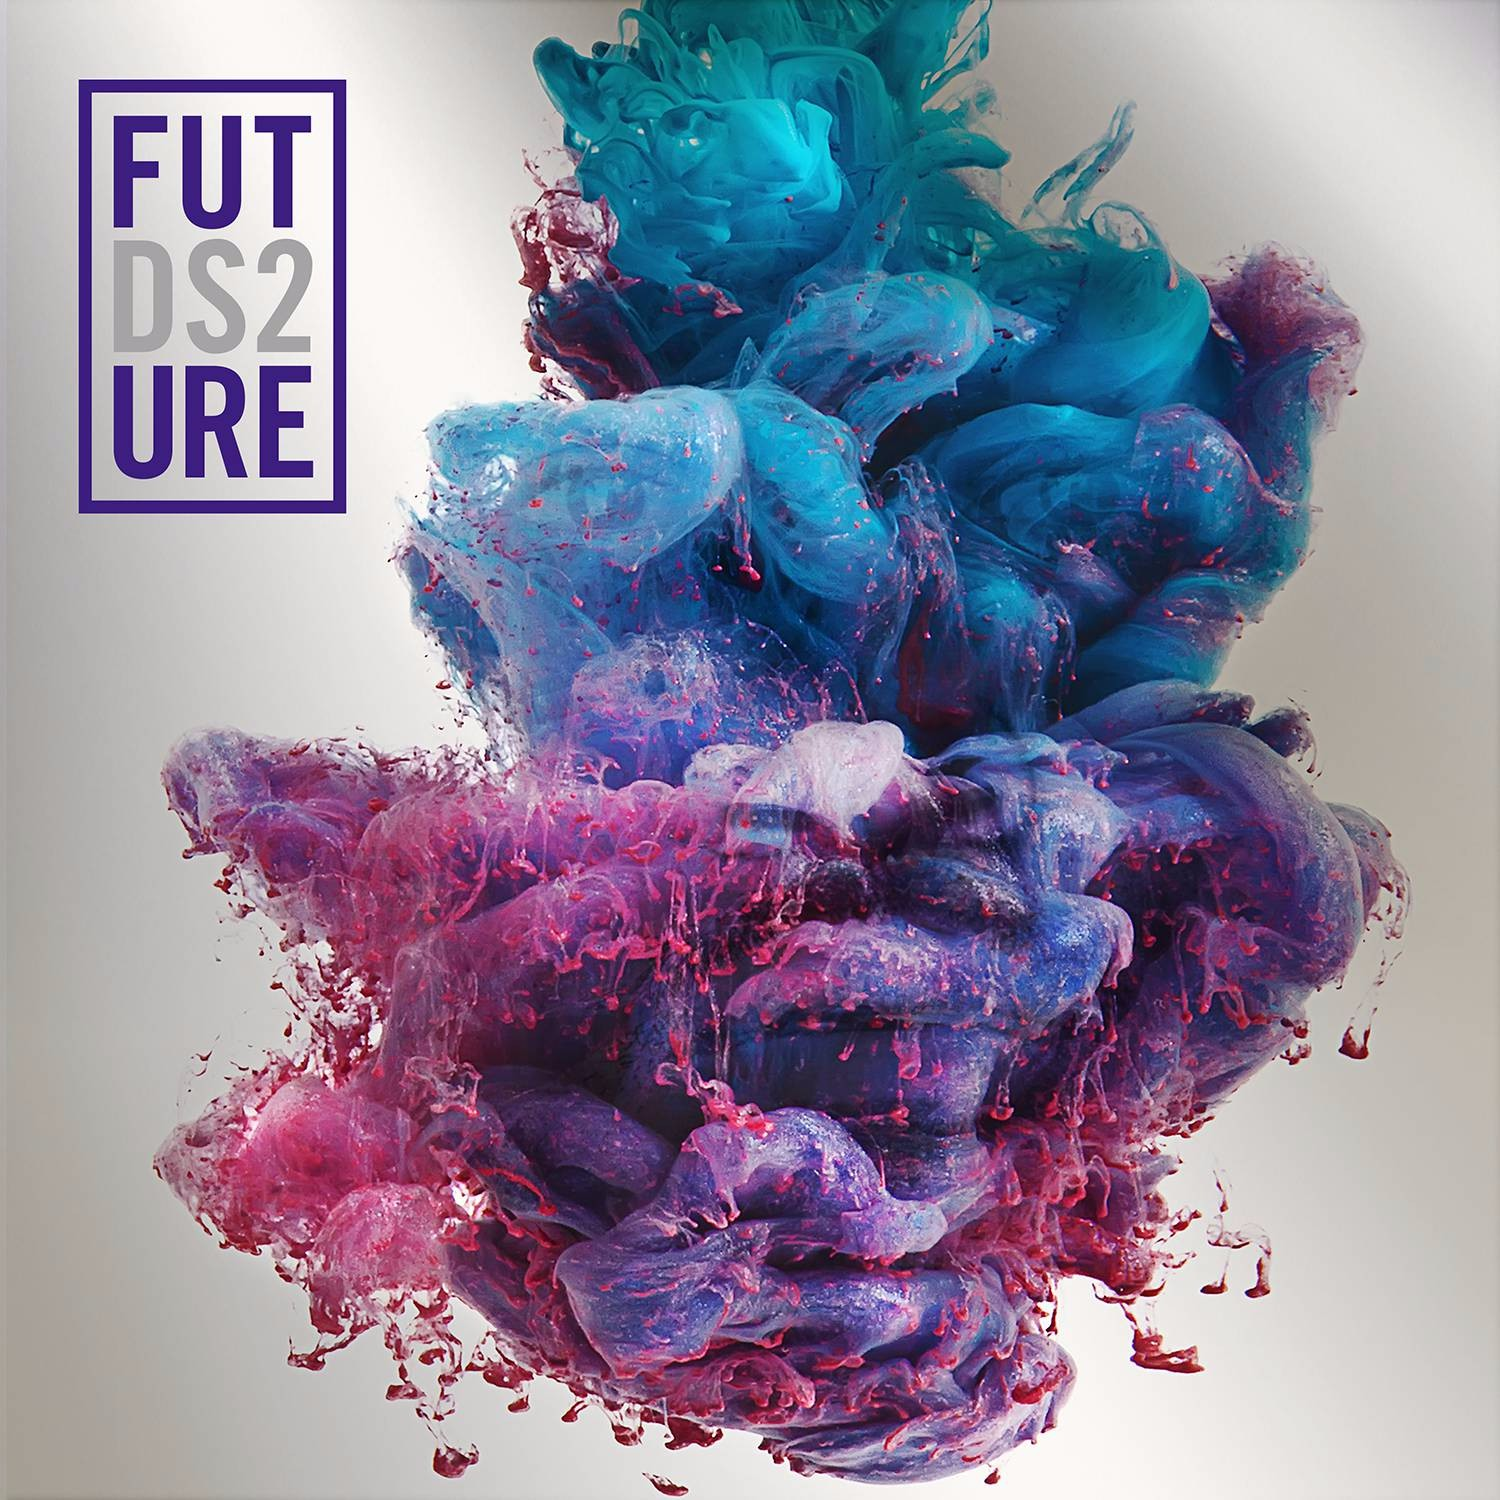 5wvf6hqtmihd3m6rnzza_future%20-%20ds2%20deluxe